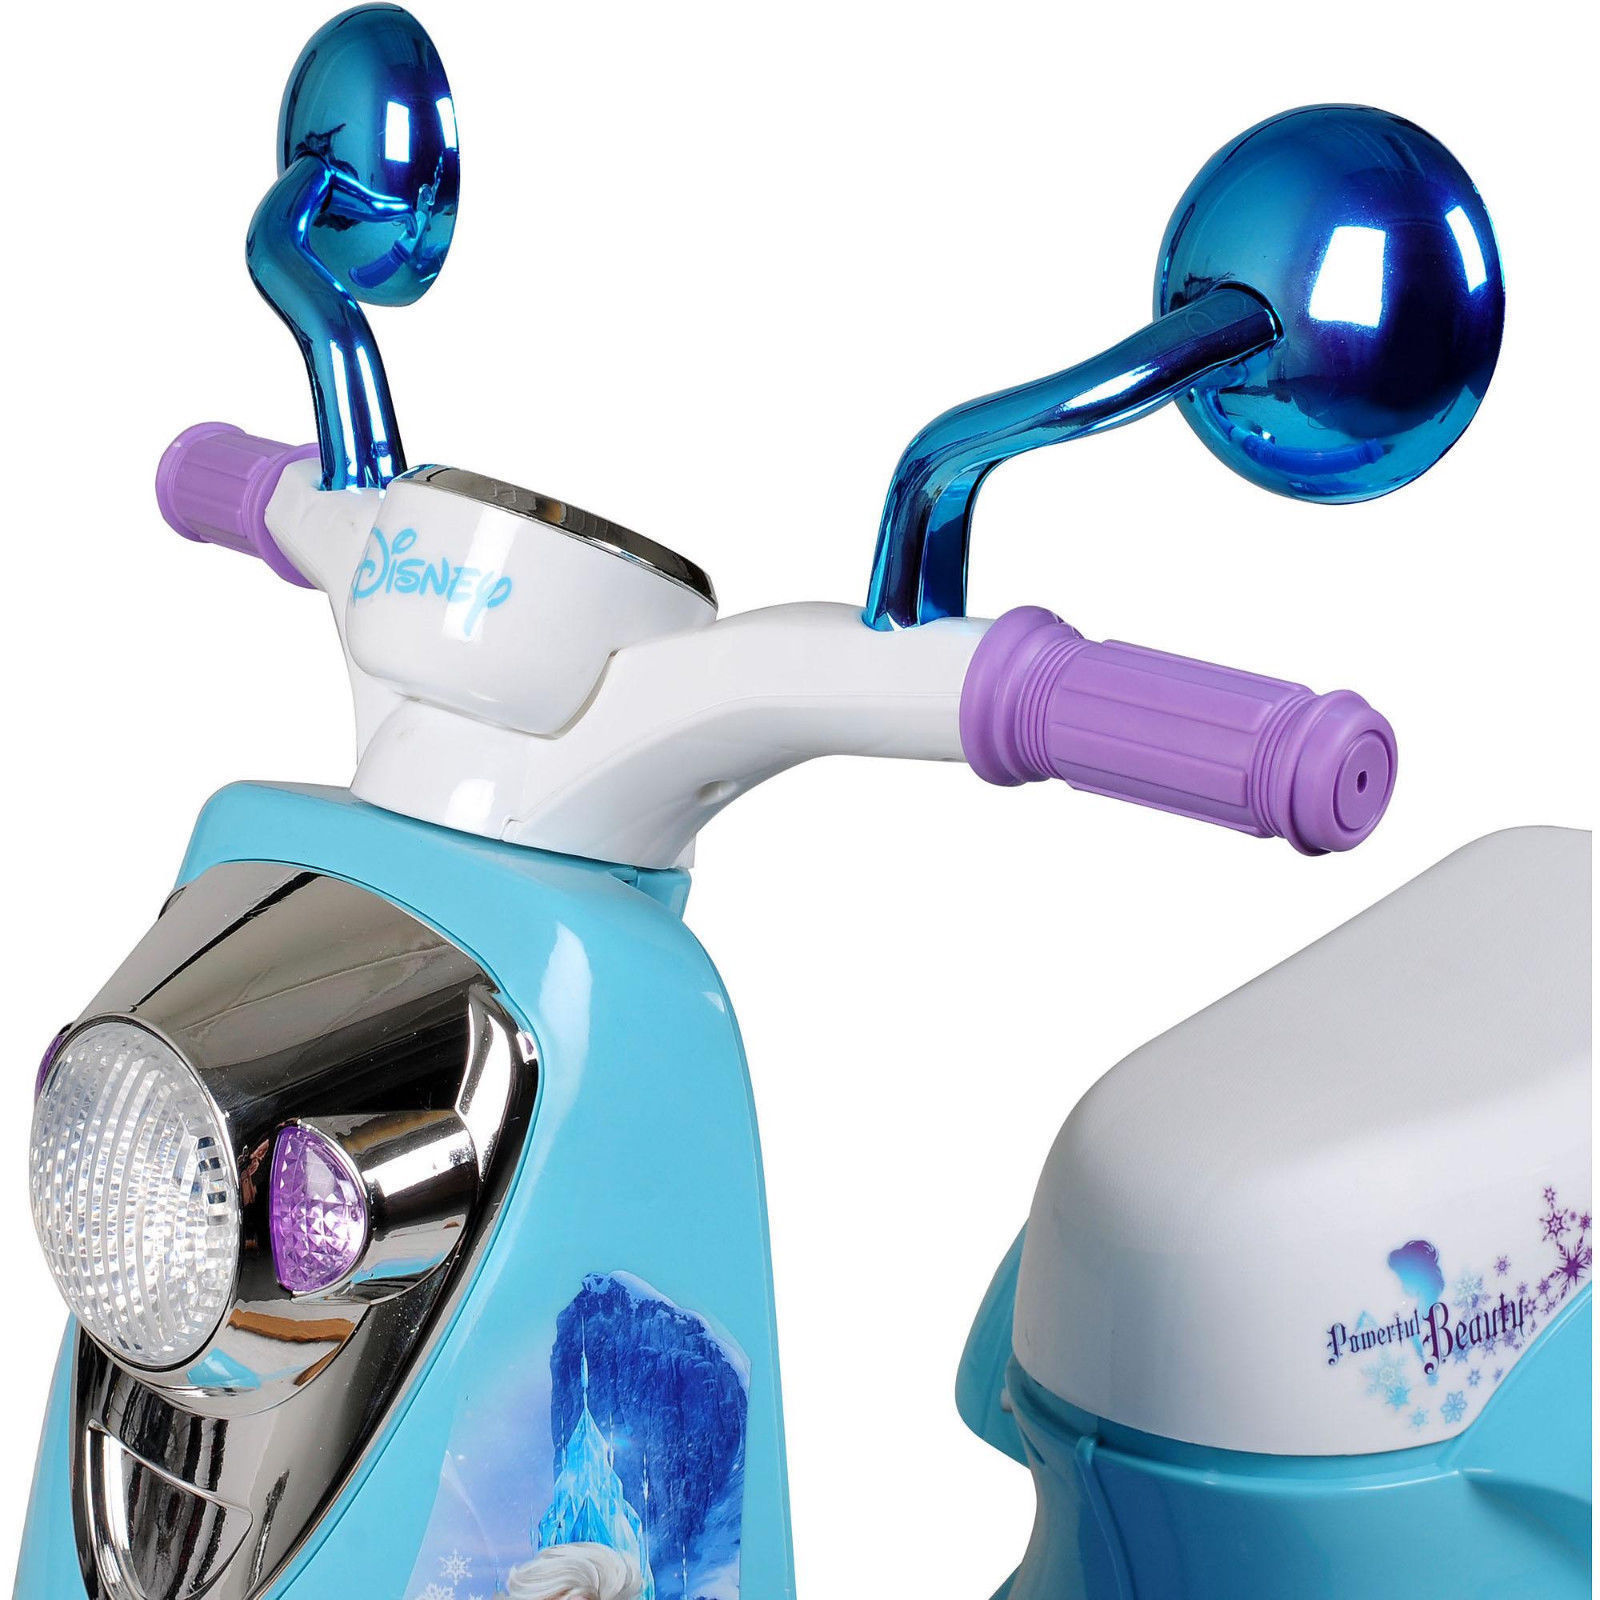 new disney frozen 3 wheel scooter 6 volt battery powered ride on toys kid us ride on toys. Black Bedroom Furniture Sets. Home Design Ideas